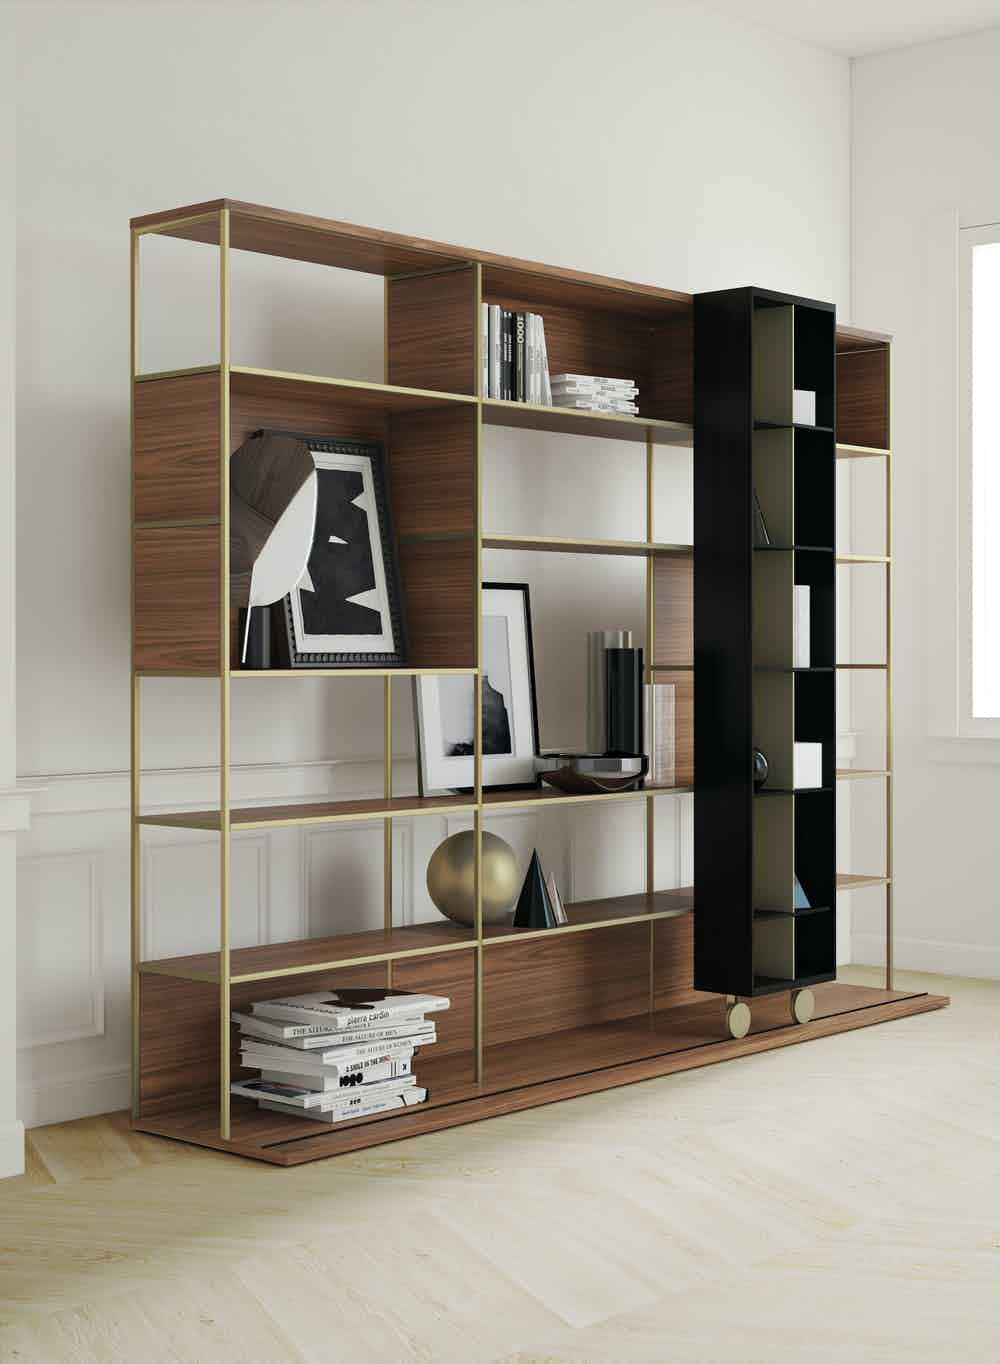 Punt furniture literatura selection insitu angle haute living